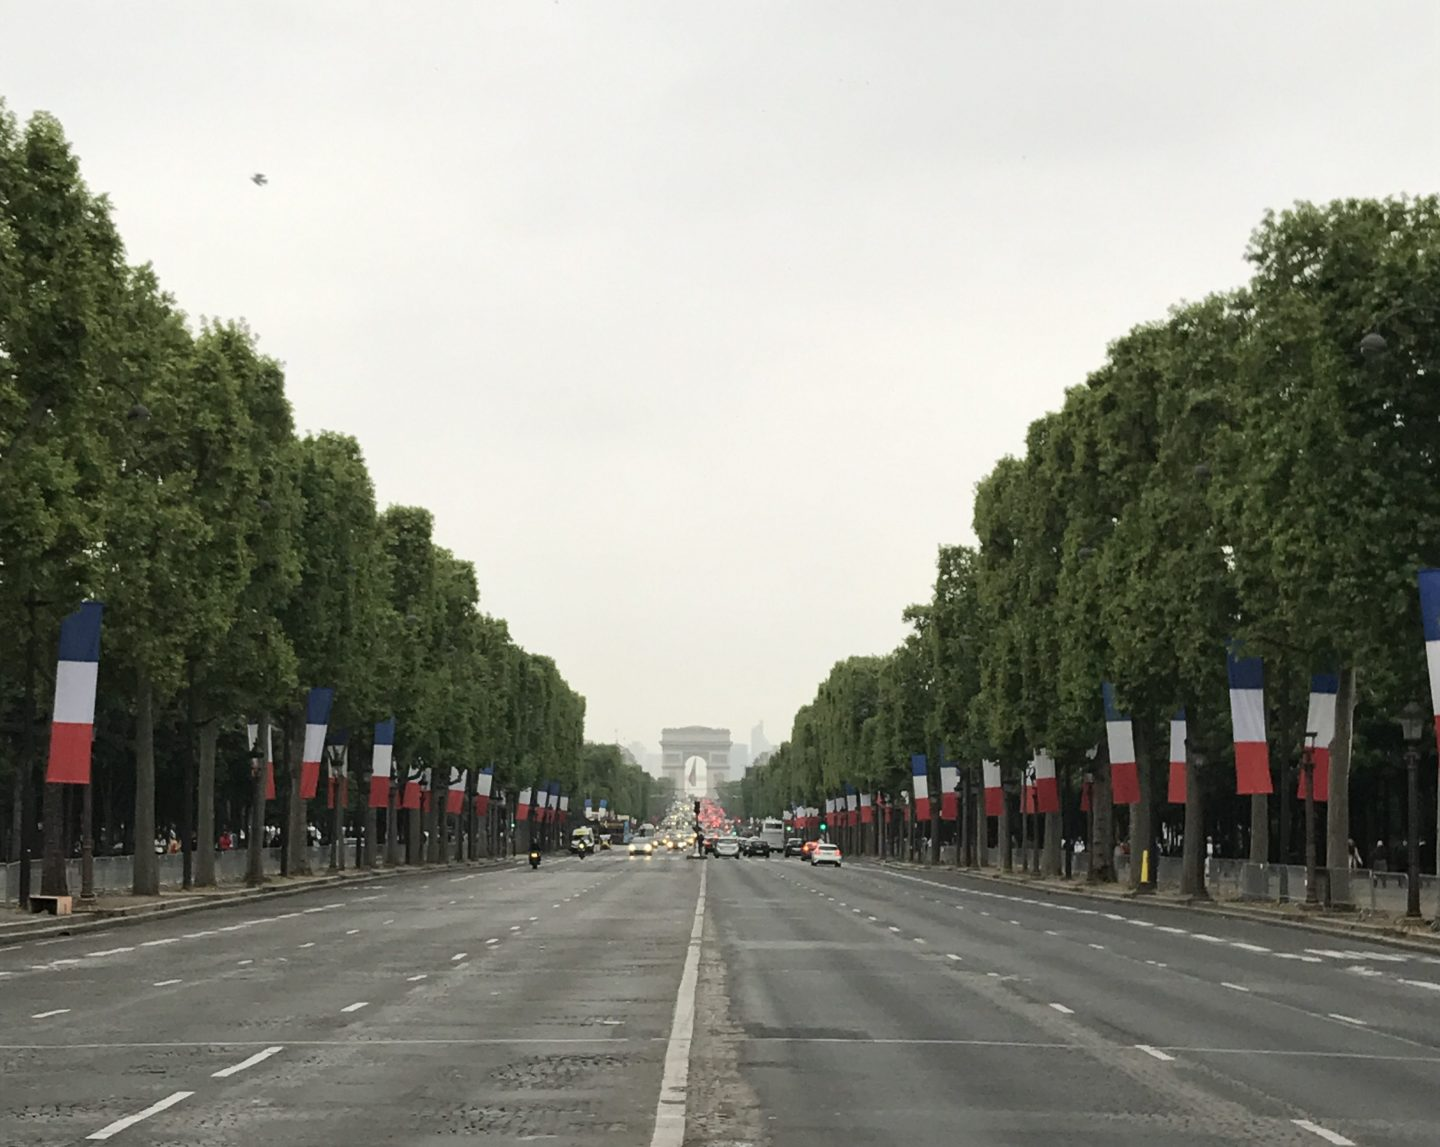 Champs-Elysees with Election flags